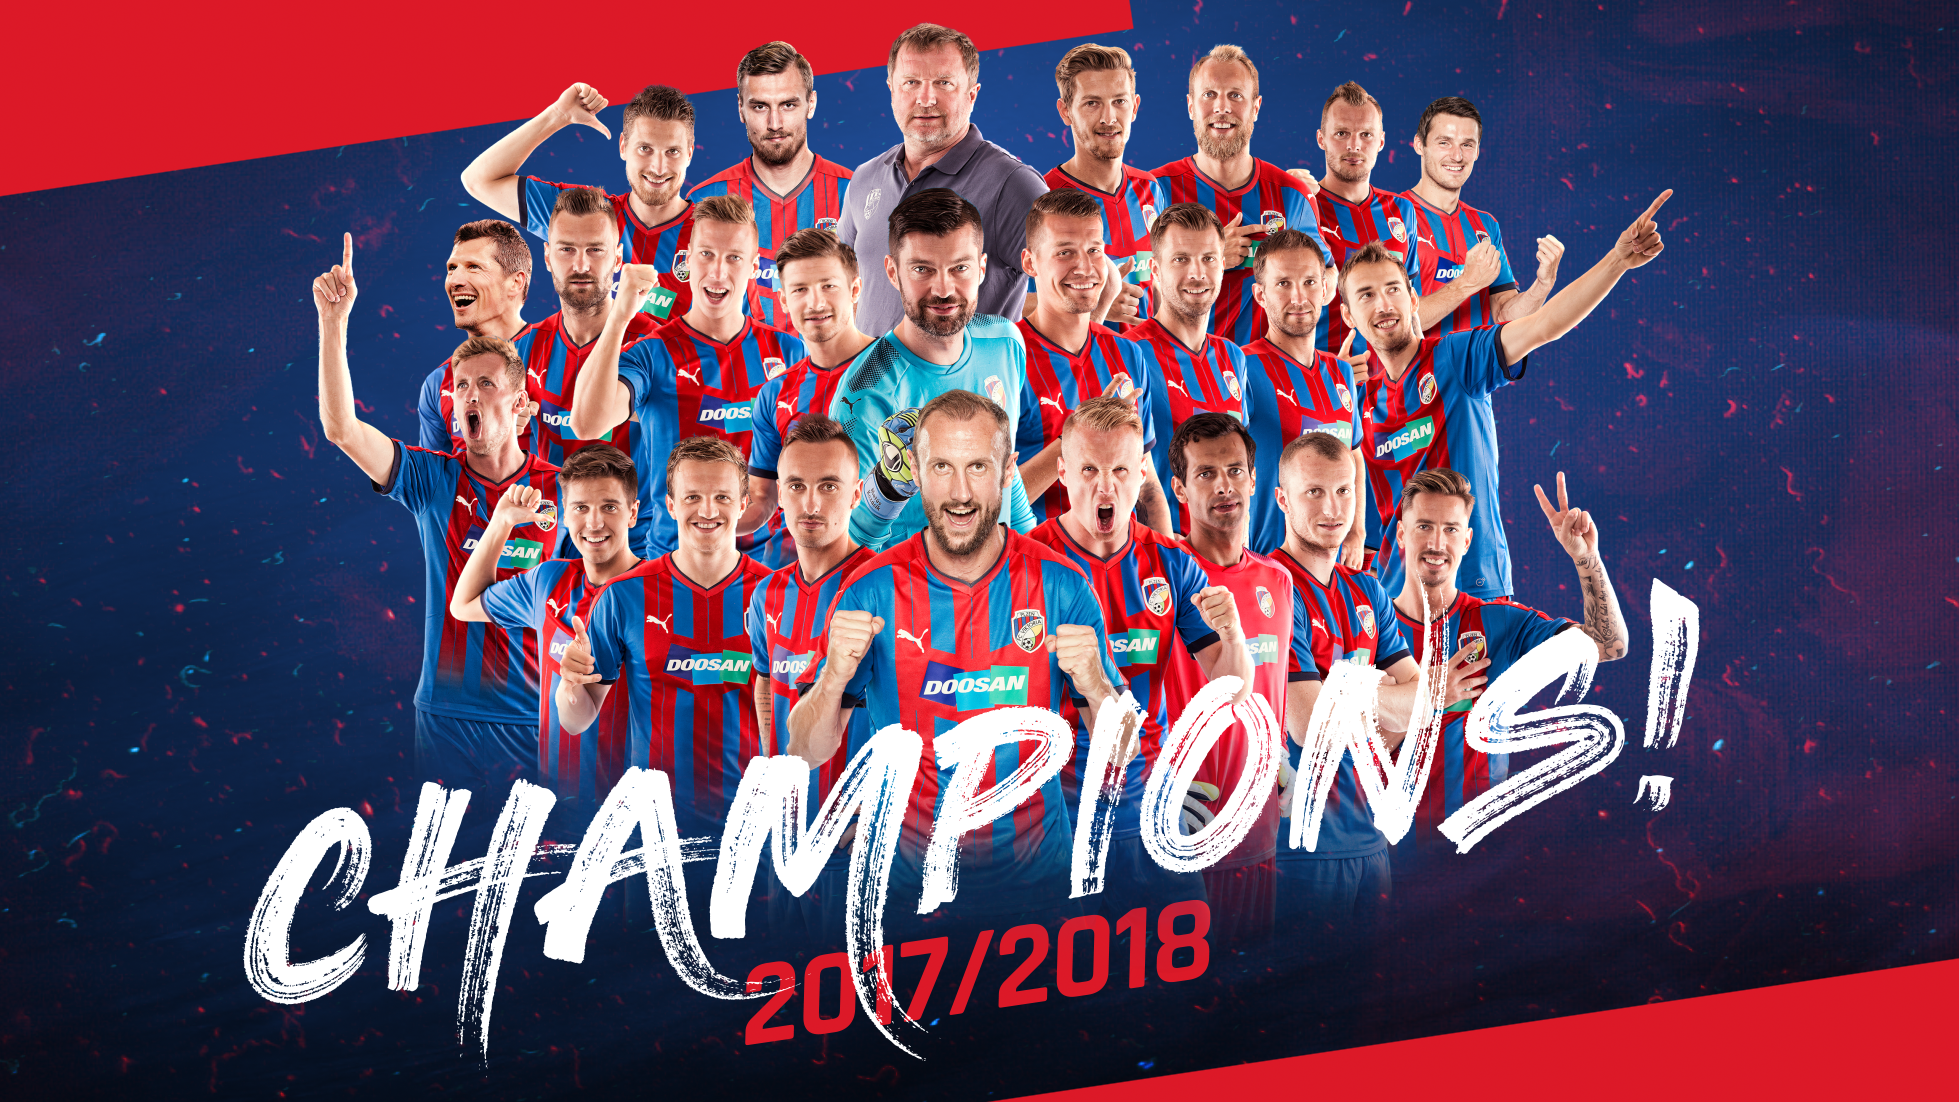 Champions! Viktoria beat Teplice and became the Czech champion for the 5th time!